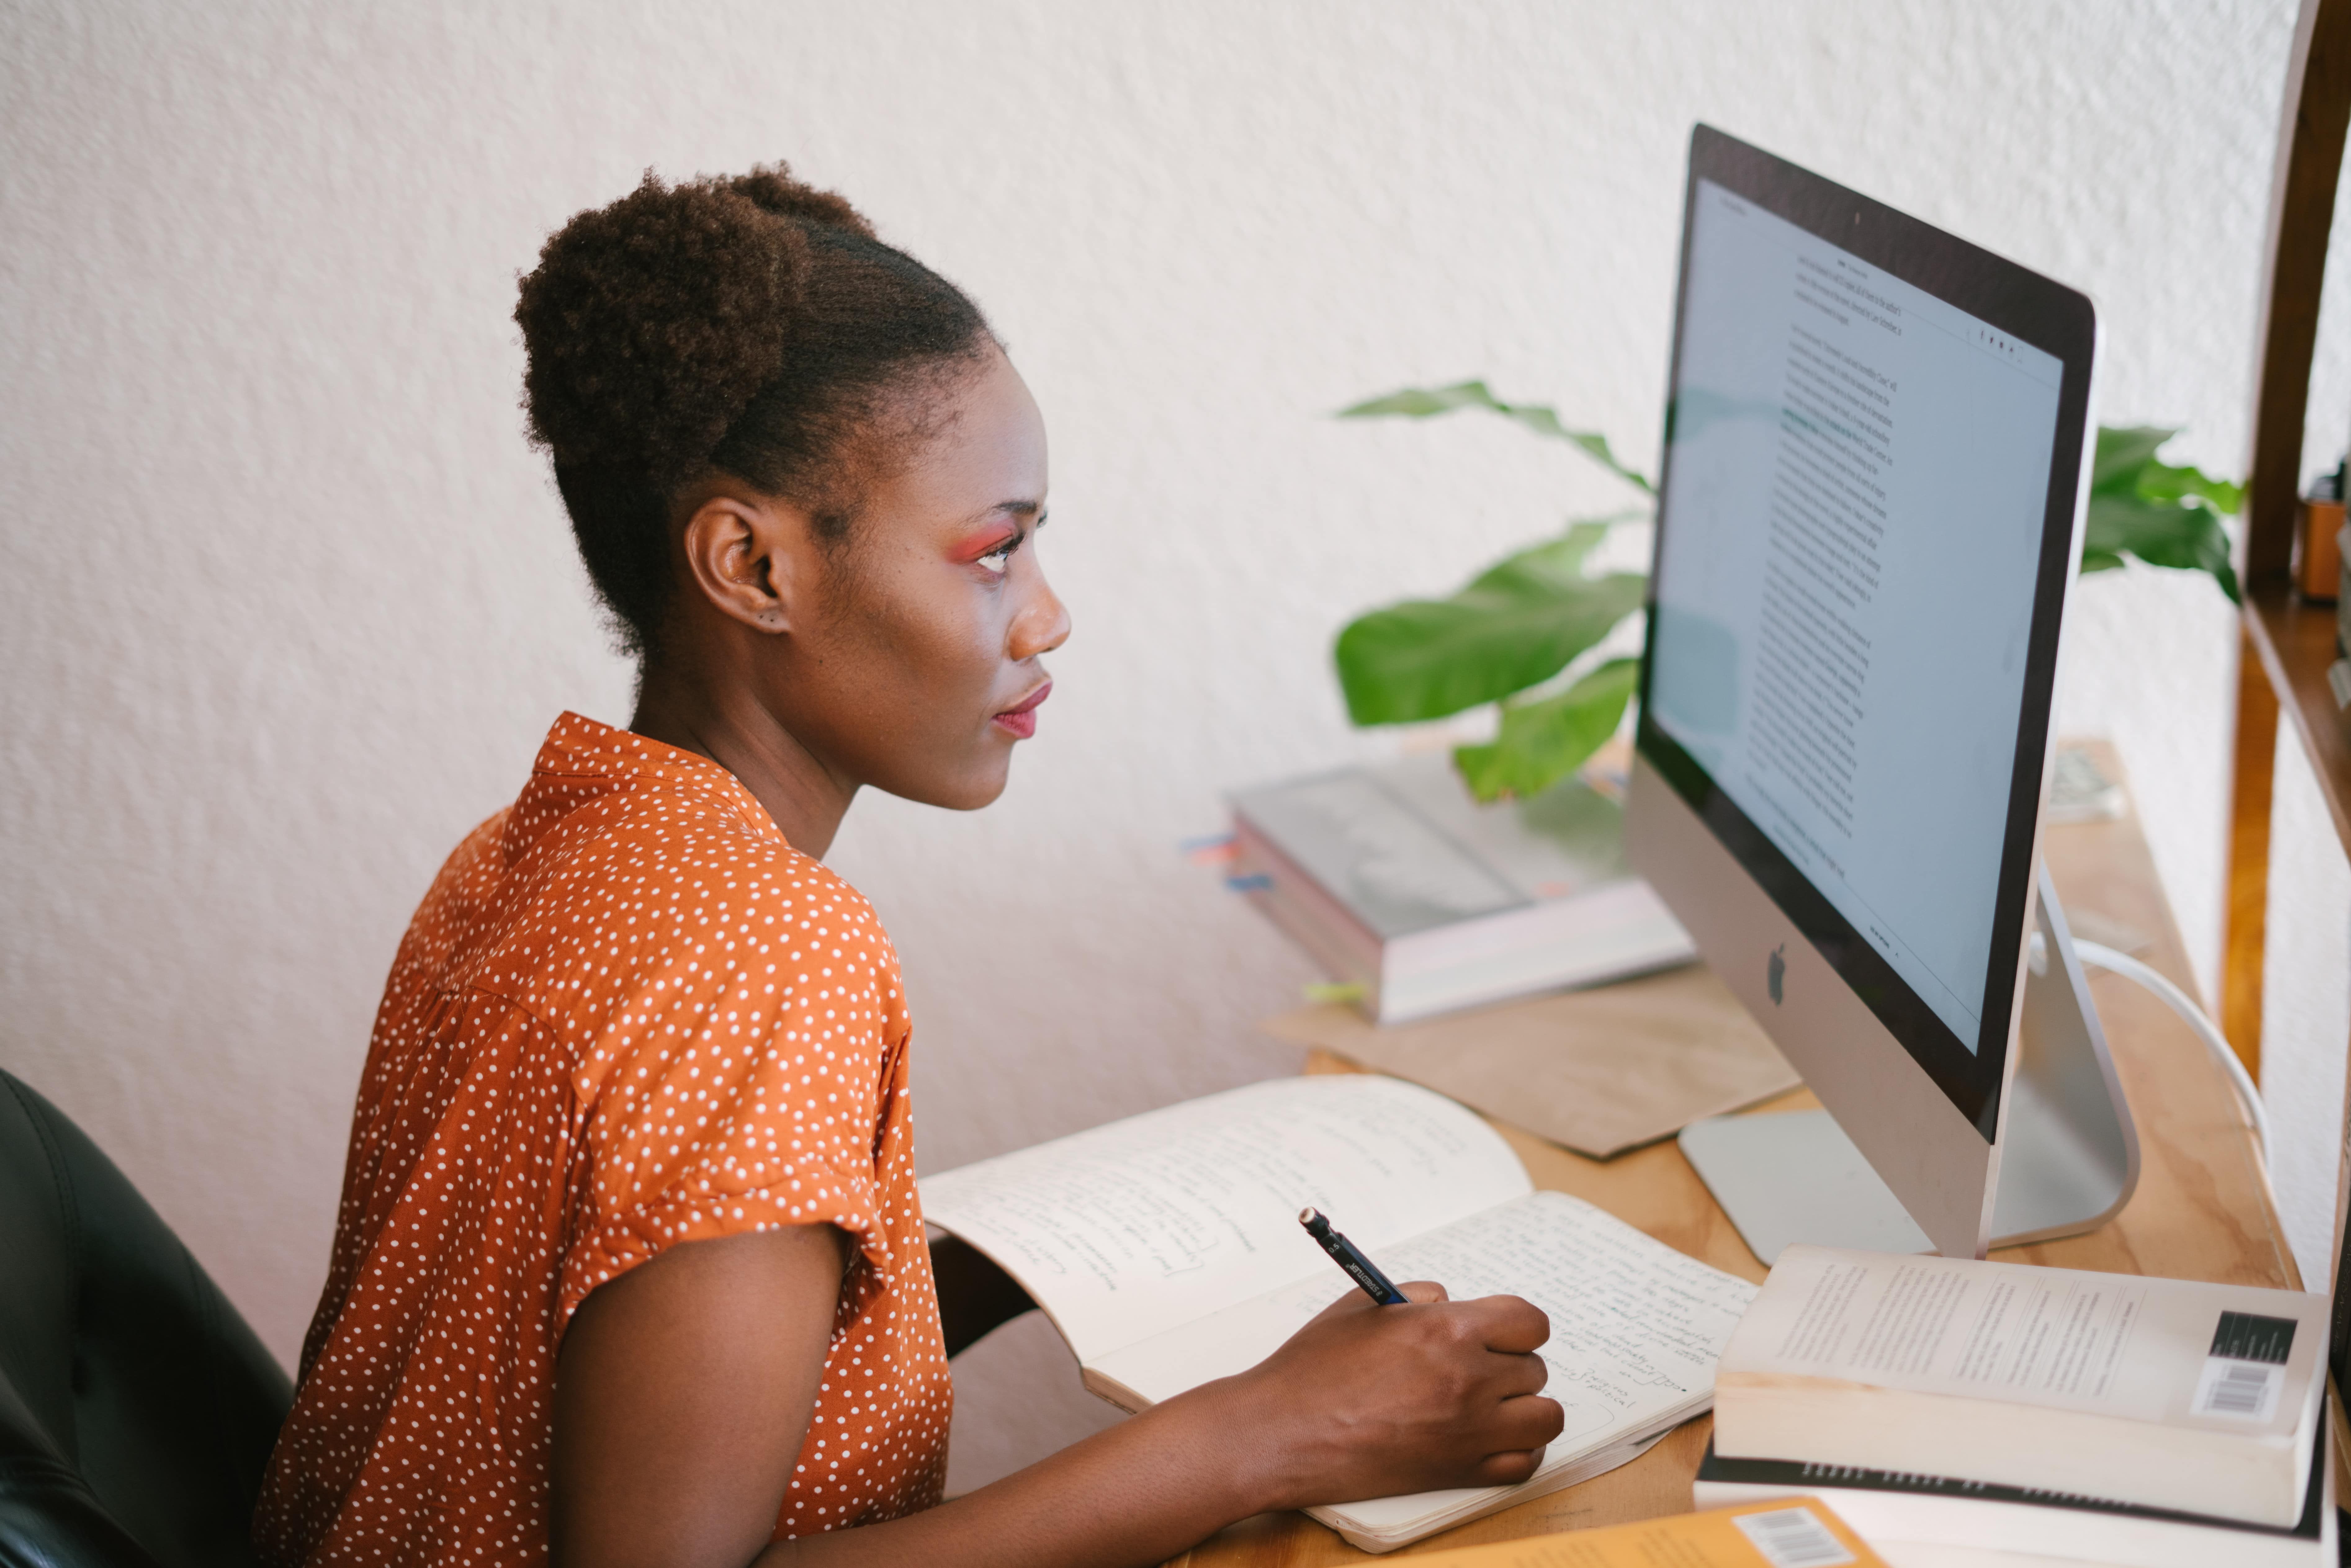 Woman working on computer and note book.